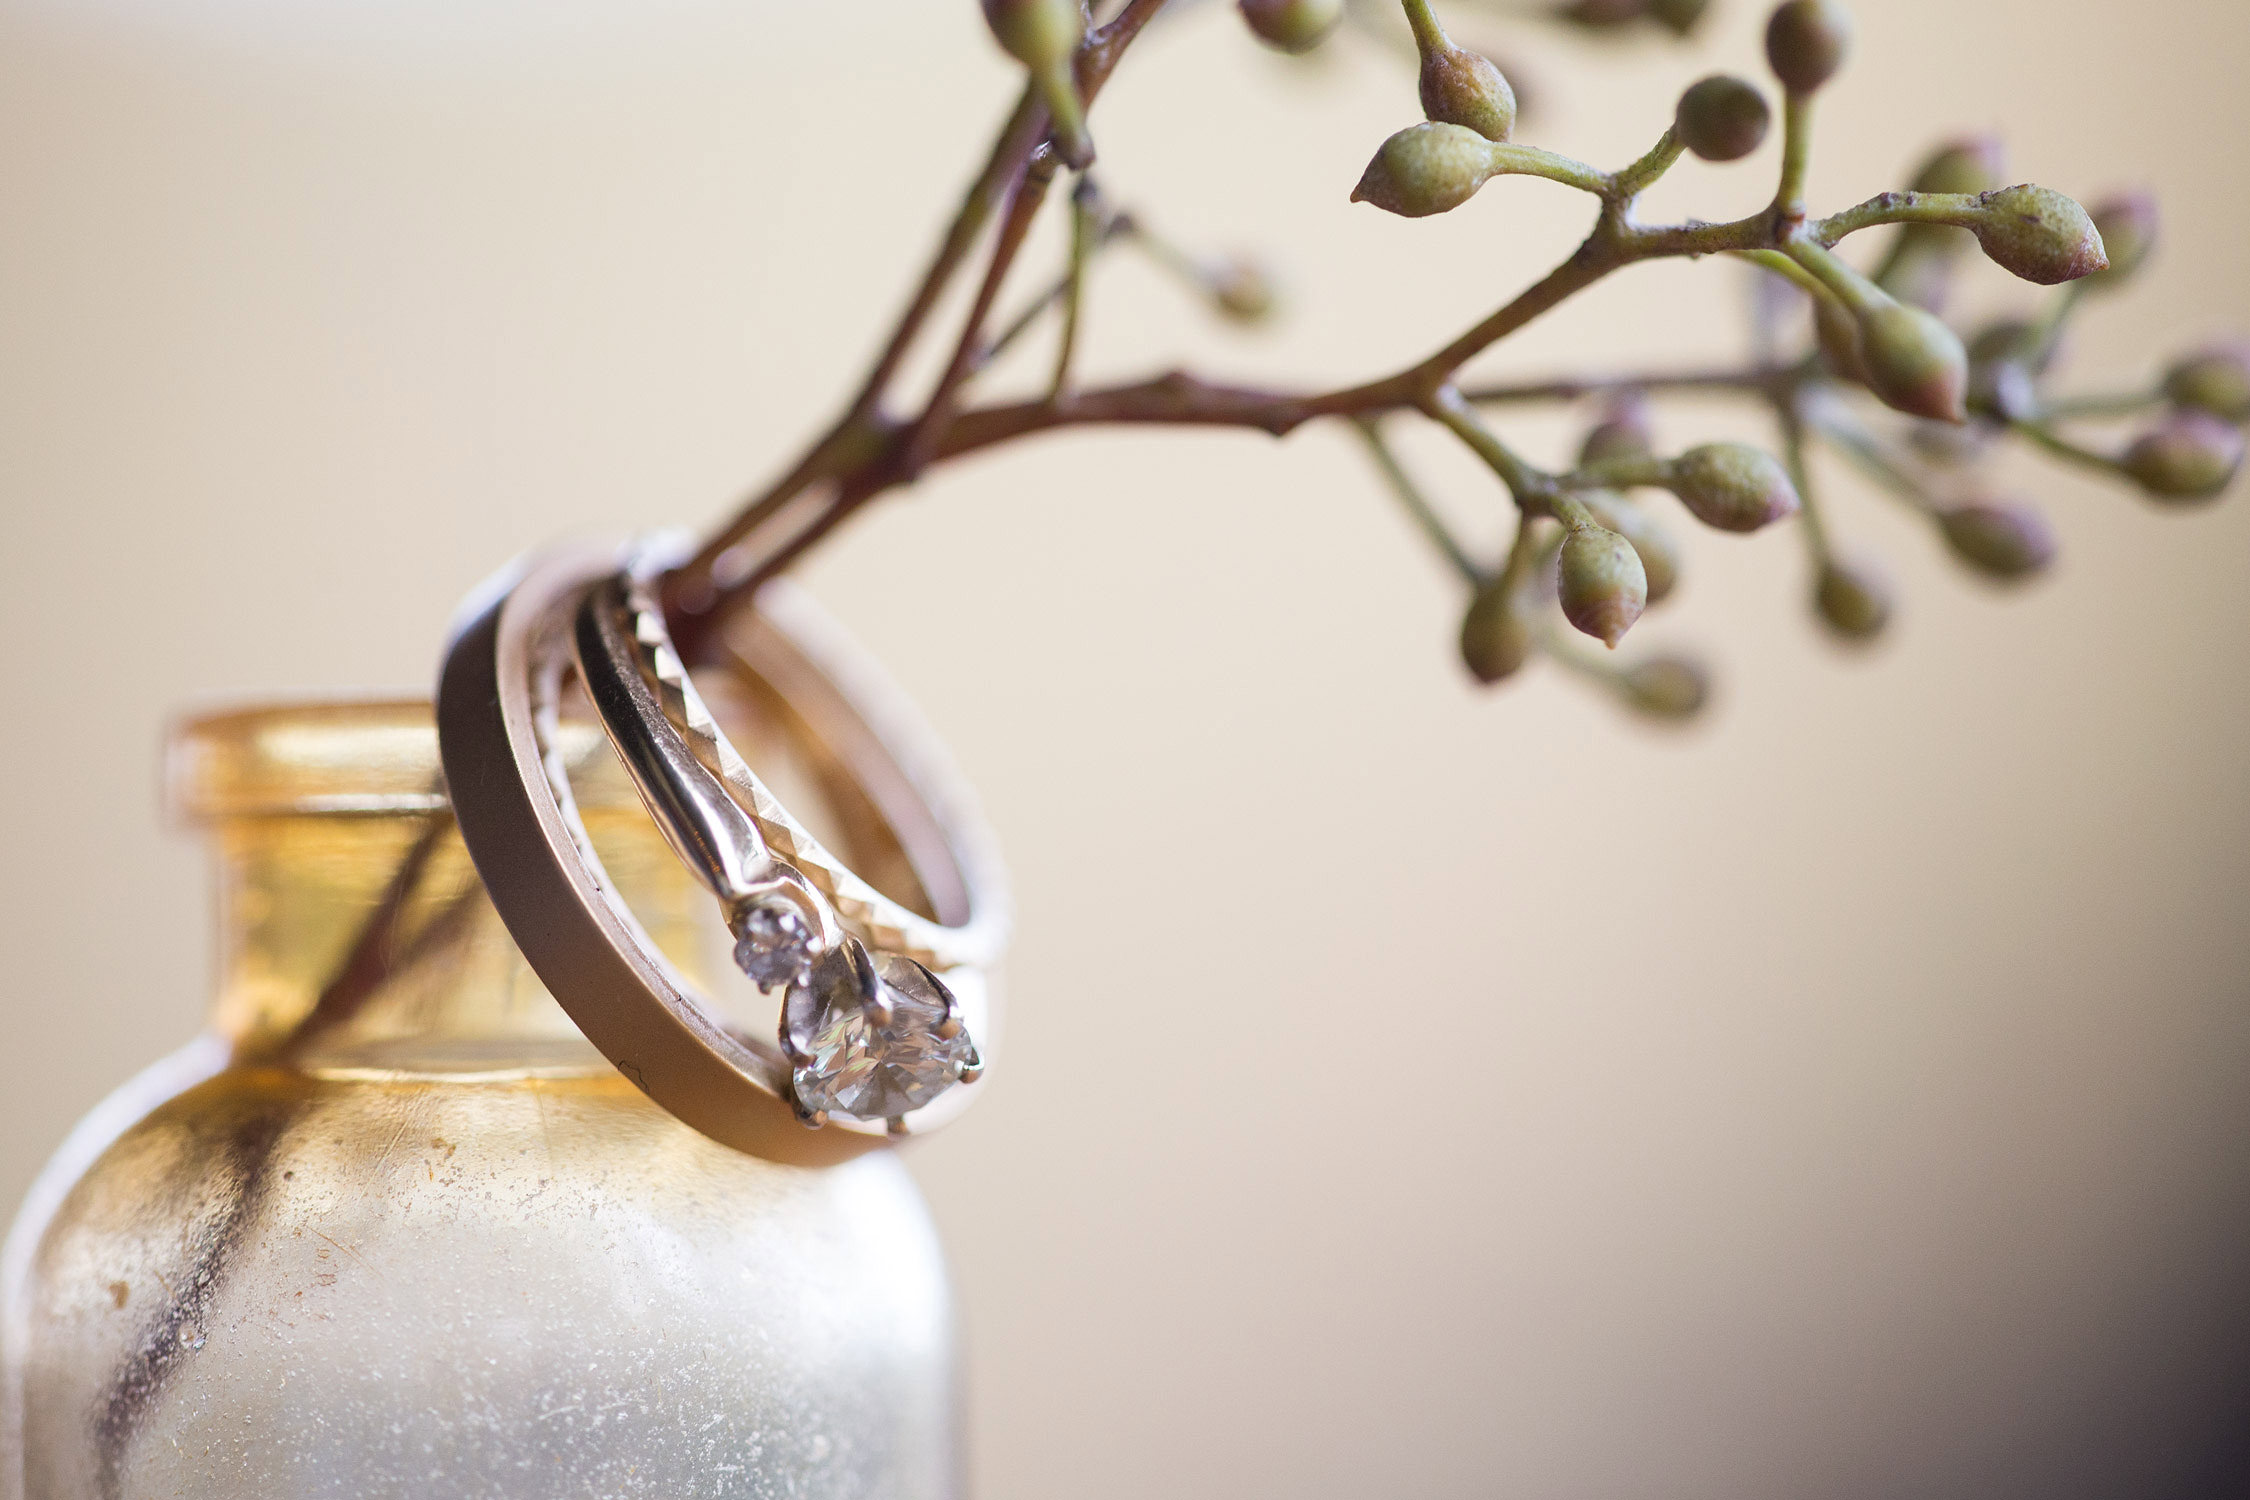 Closeup of wedding rings around a flower stem in a tiny jar